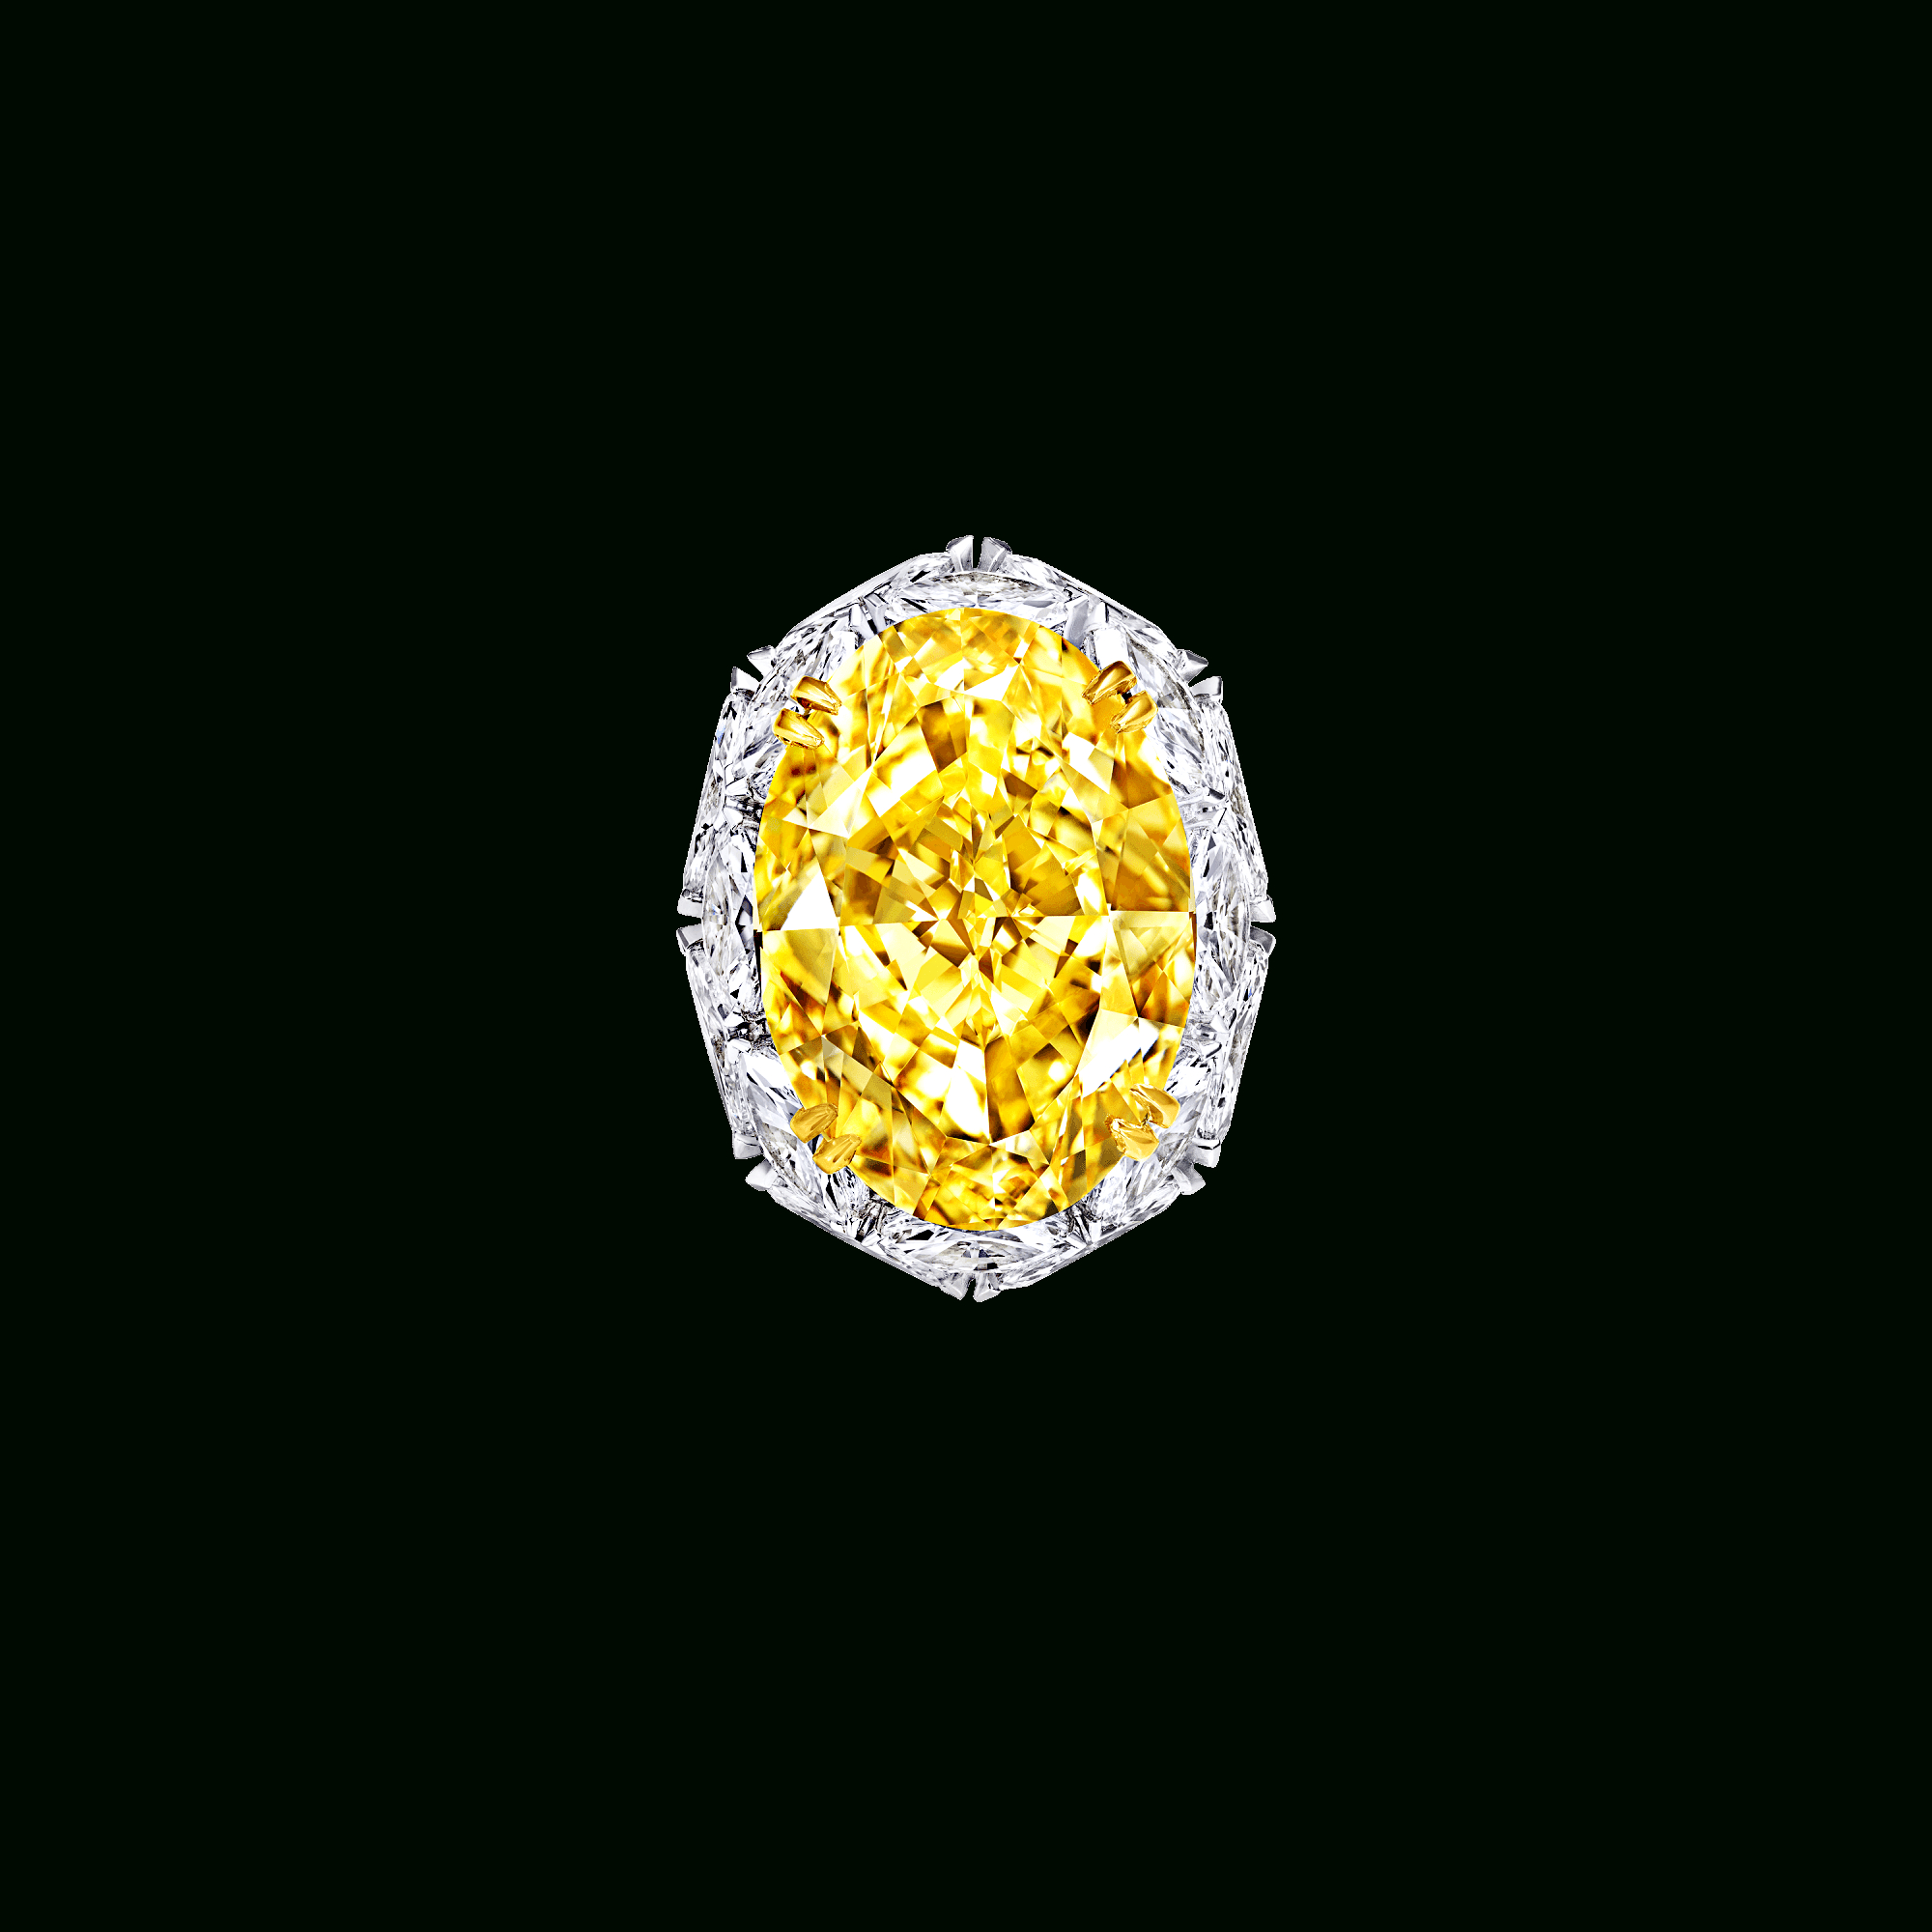 Oval Shape Yellow And White Diamond Ring | Luxury Jewelry In With Oval Shaped Yellow Diamond Rings (Gallery 10 of 25)